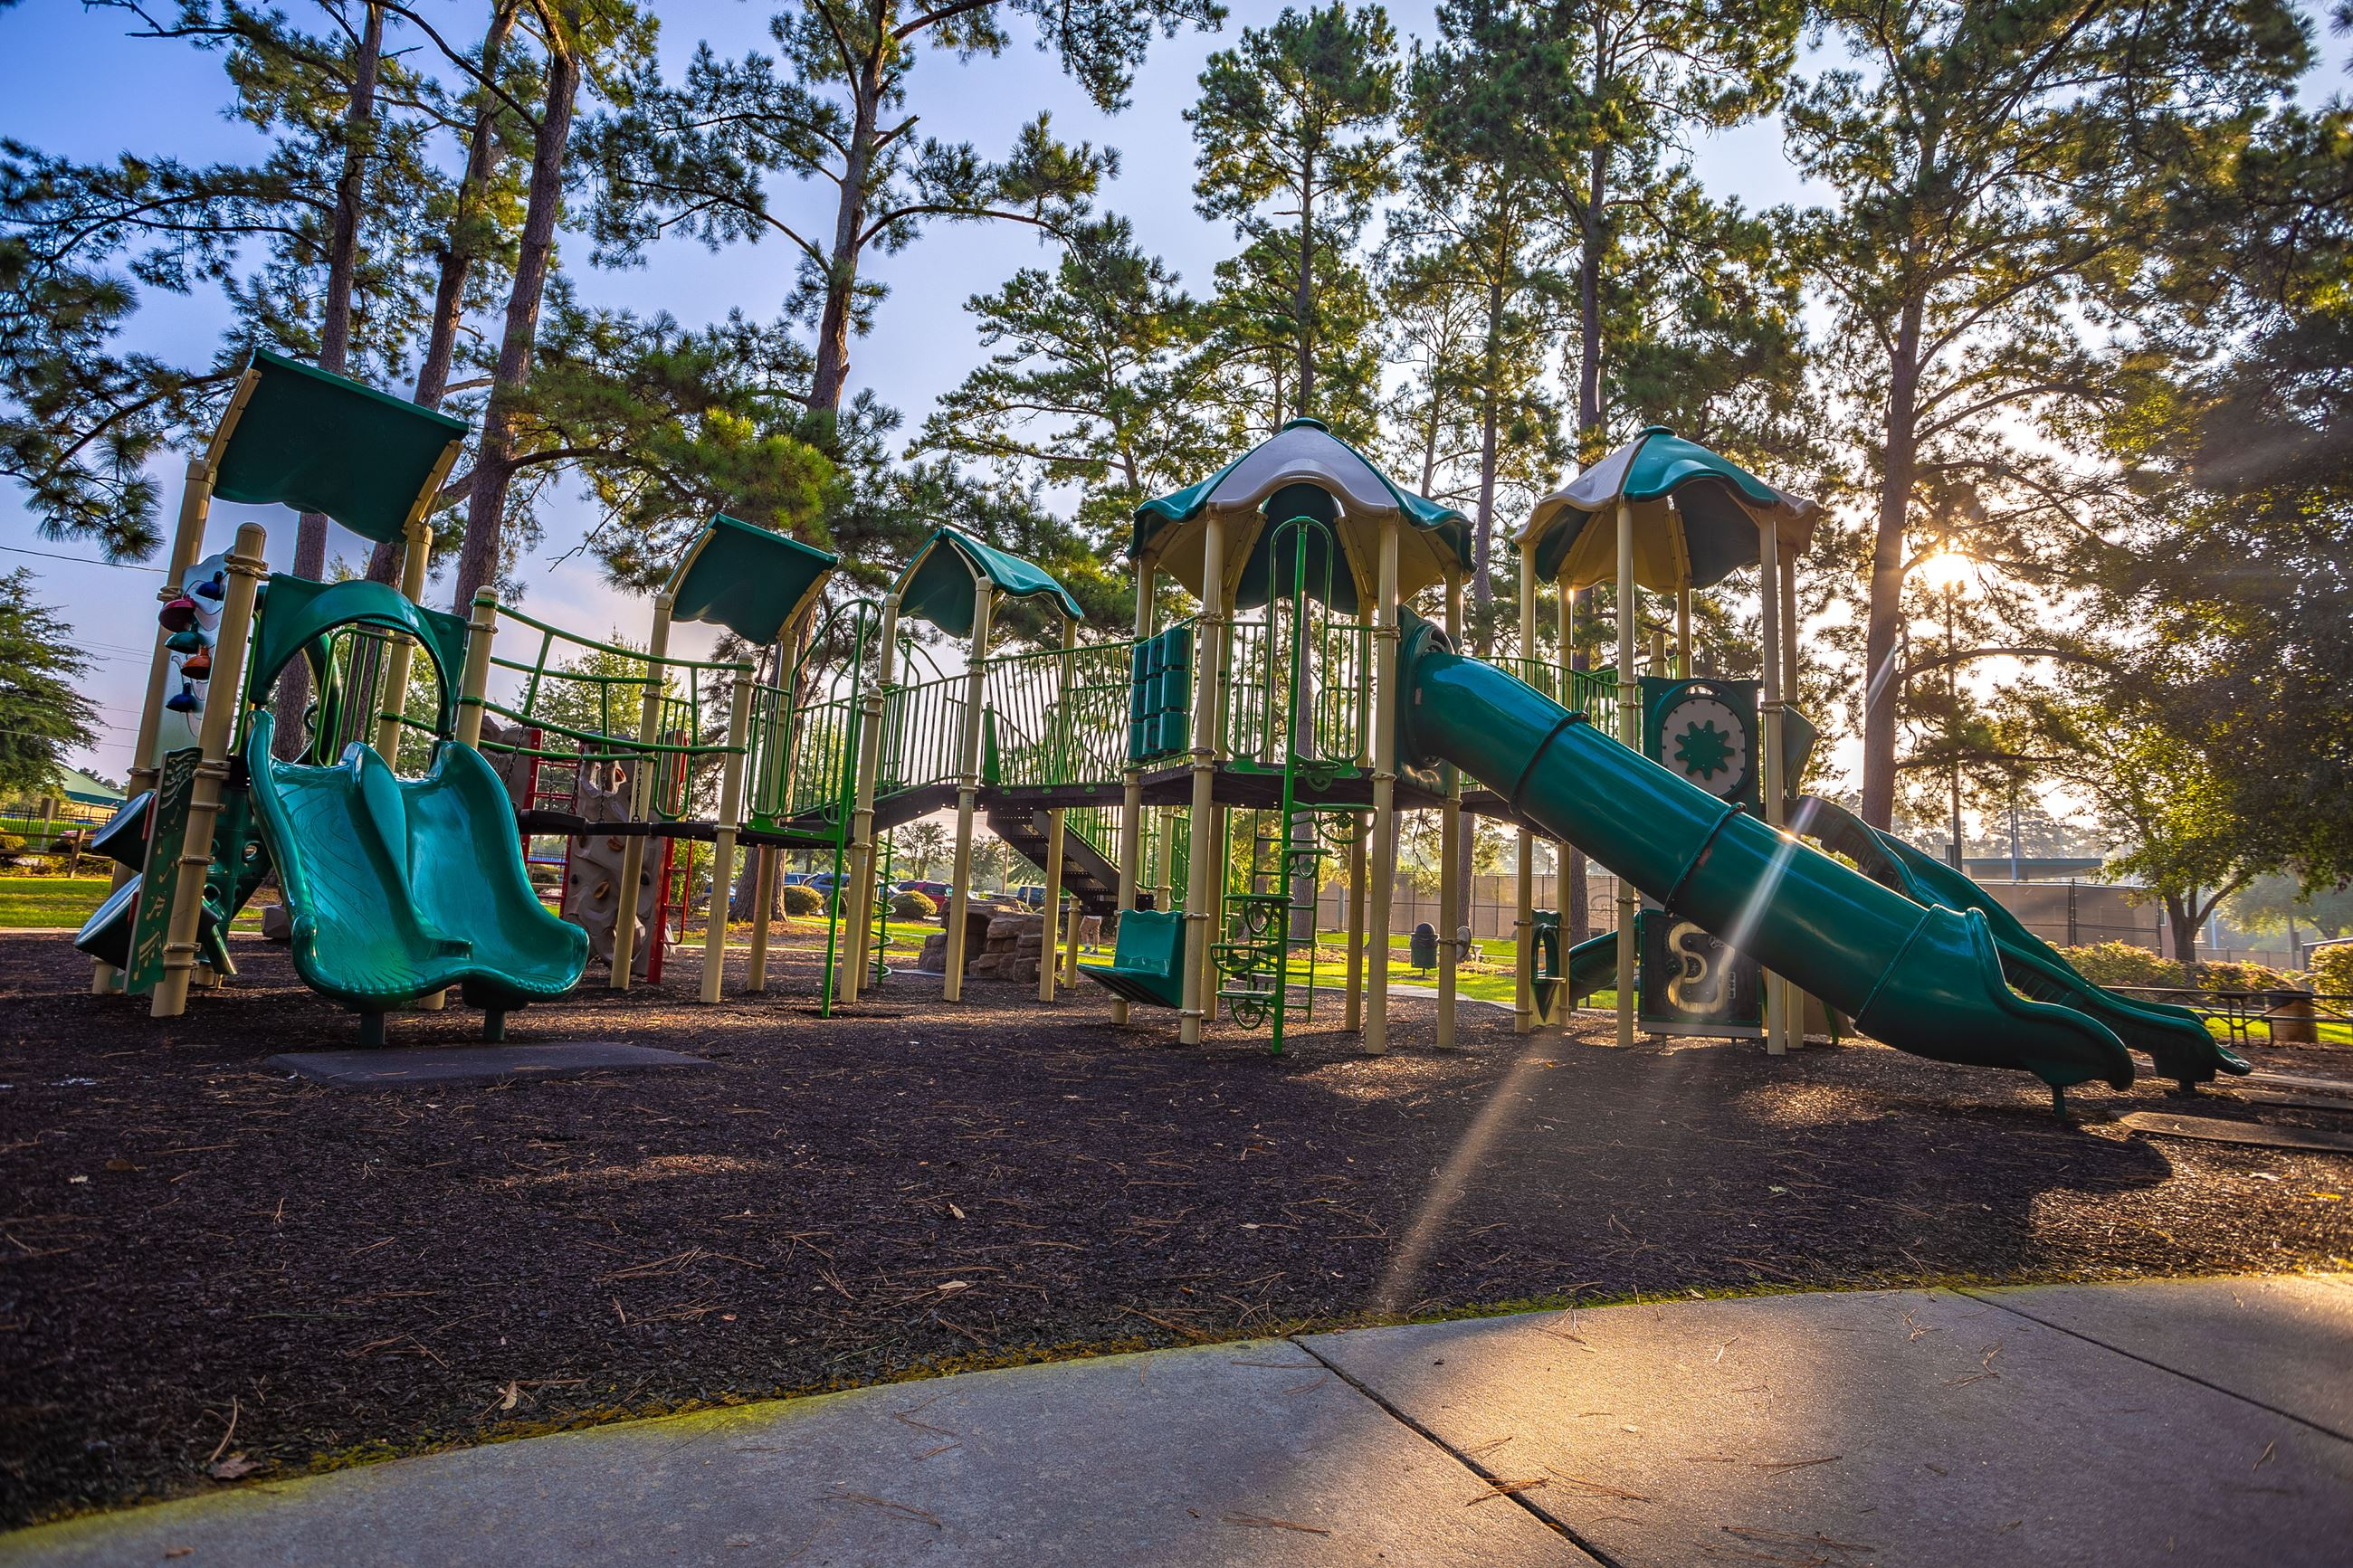 An image of a green playground with slides surrounded by trees.